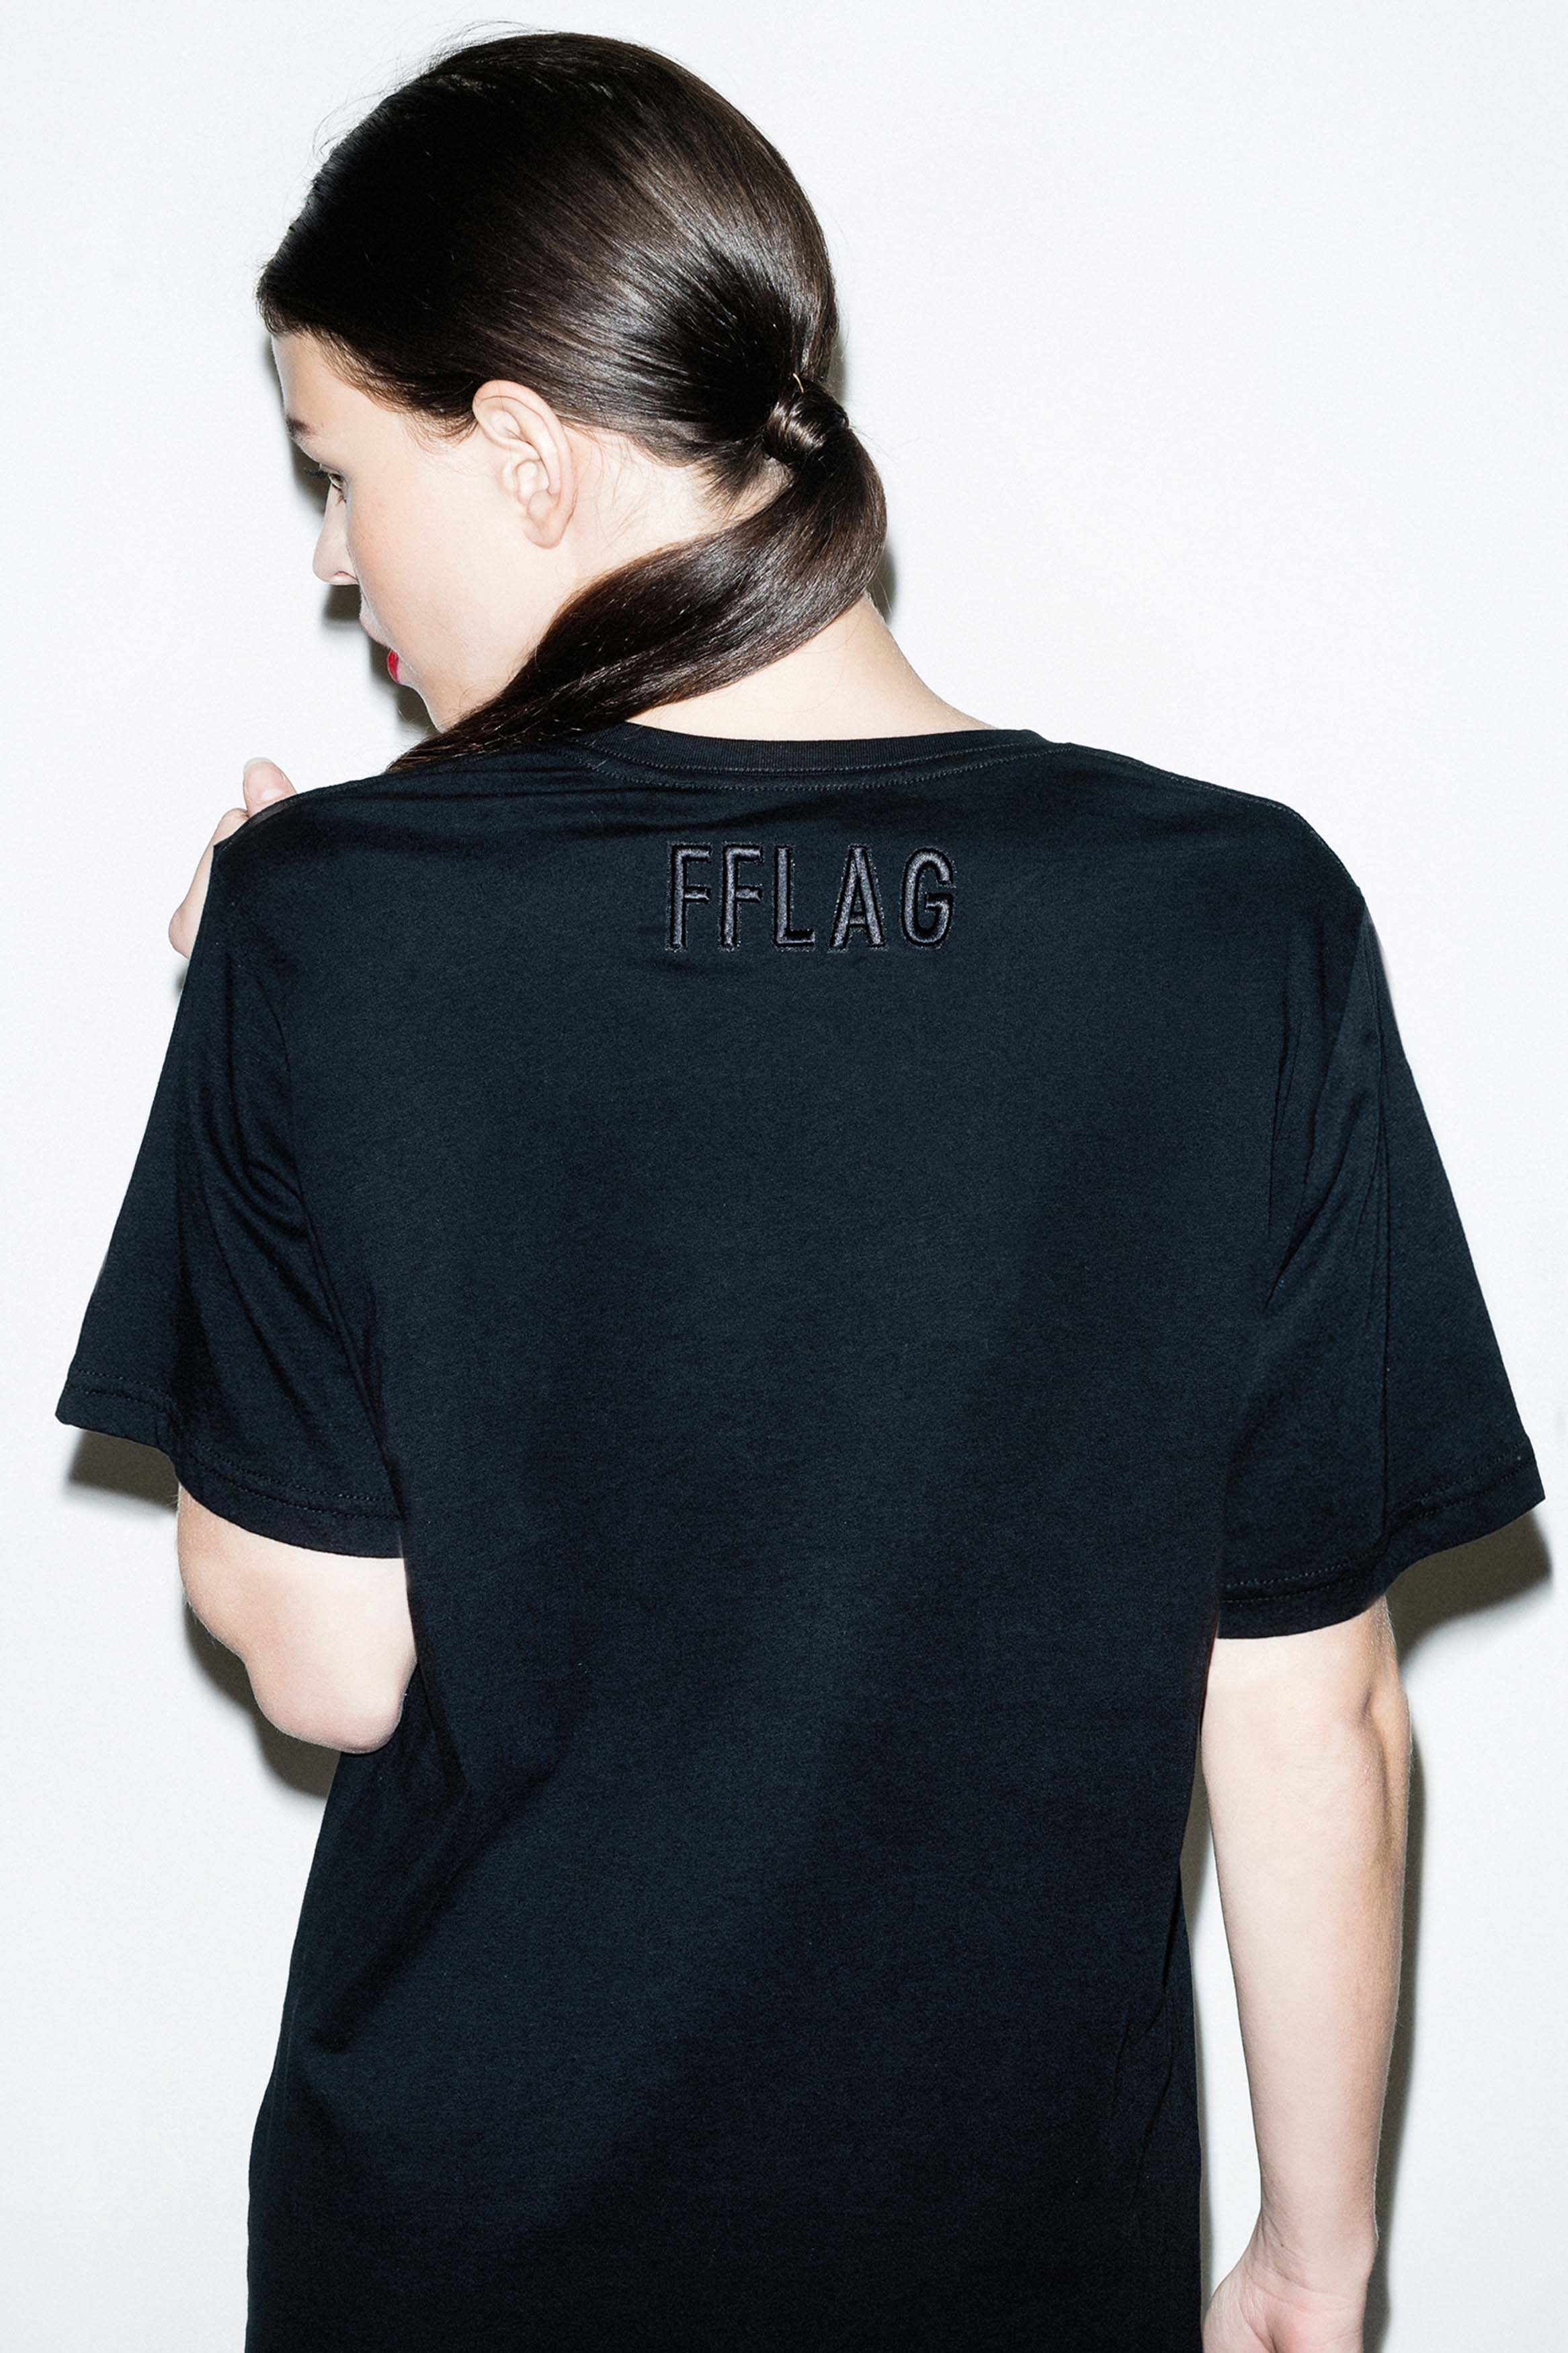 fflag-tee-shirt-long-poppies-ornement-fleurs-sequins-grenat4b